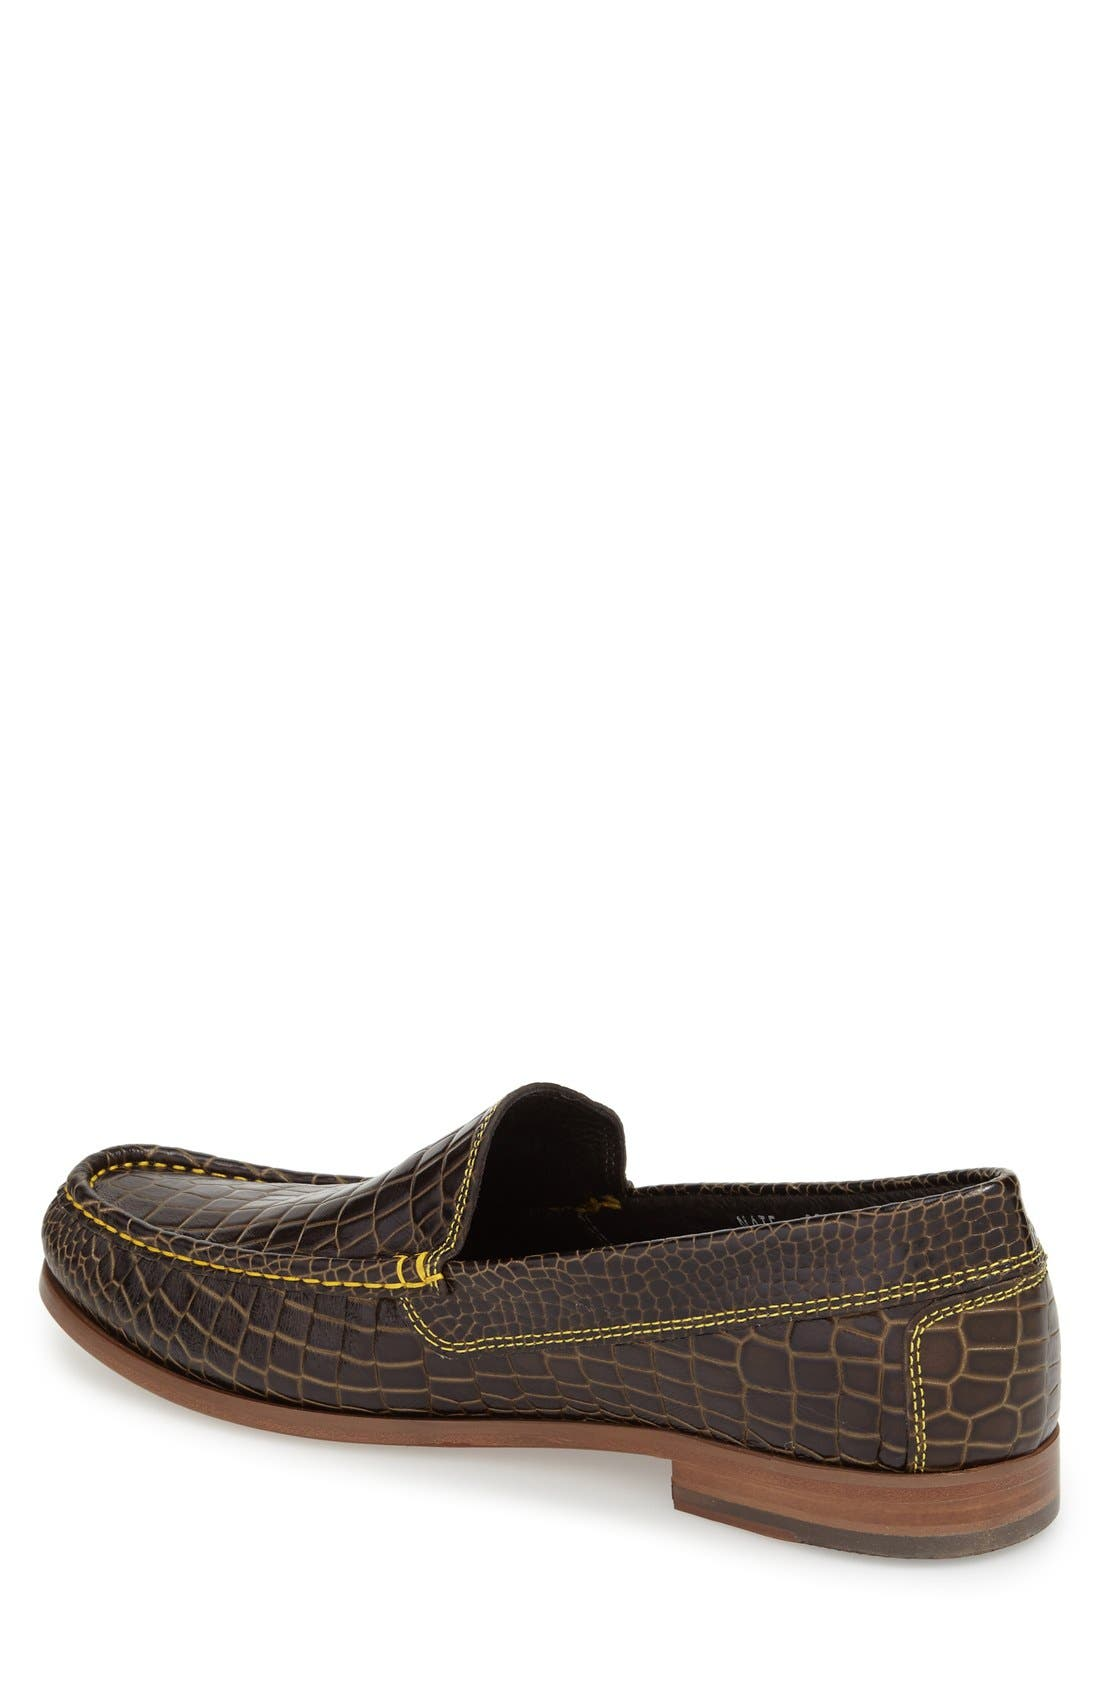 Donald J Pliner 'Nate' Loafer,                             Alternate thumbnail 17, color,